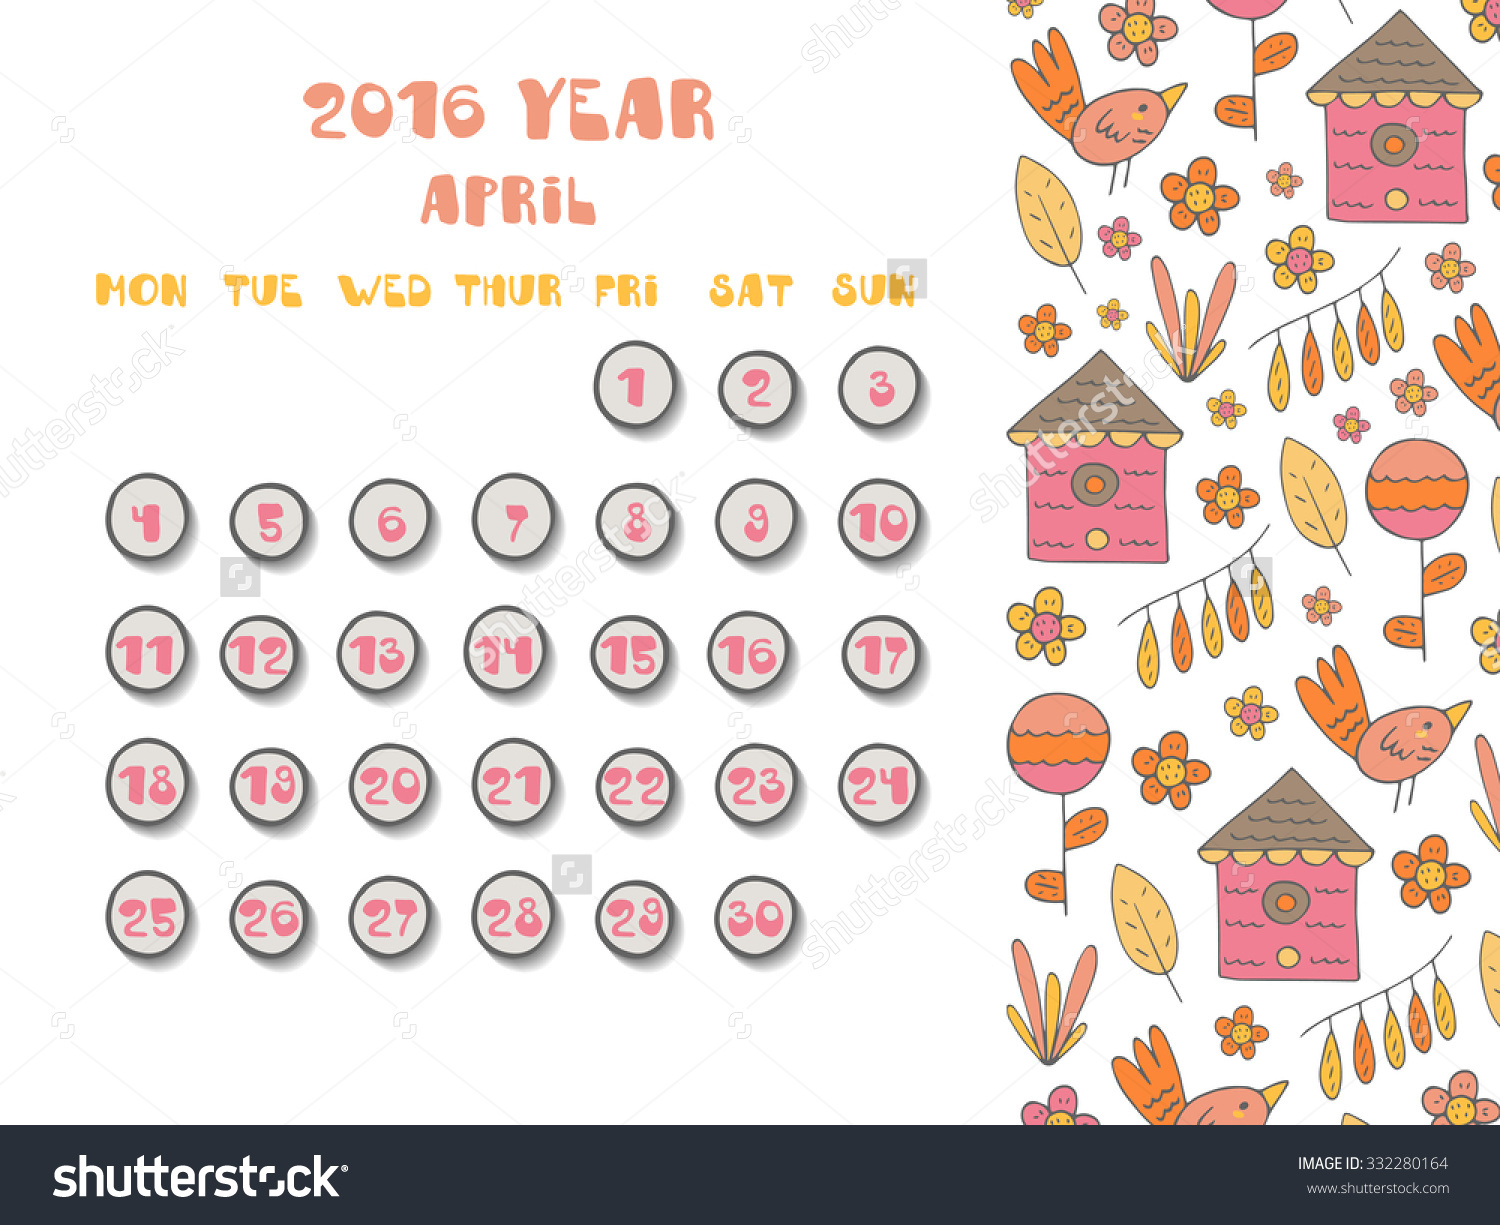 April 2016 clipart calendar picture freeuse download Cute Hand Drawn Doodle April 2016 Stock Vector 332280164 ... picture freeuse download